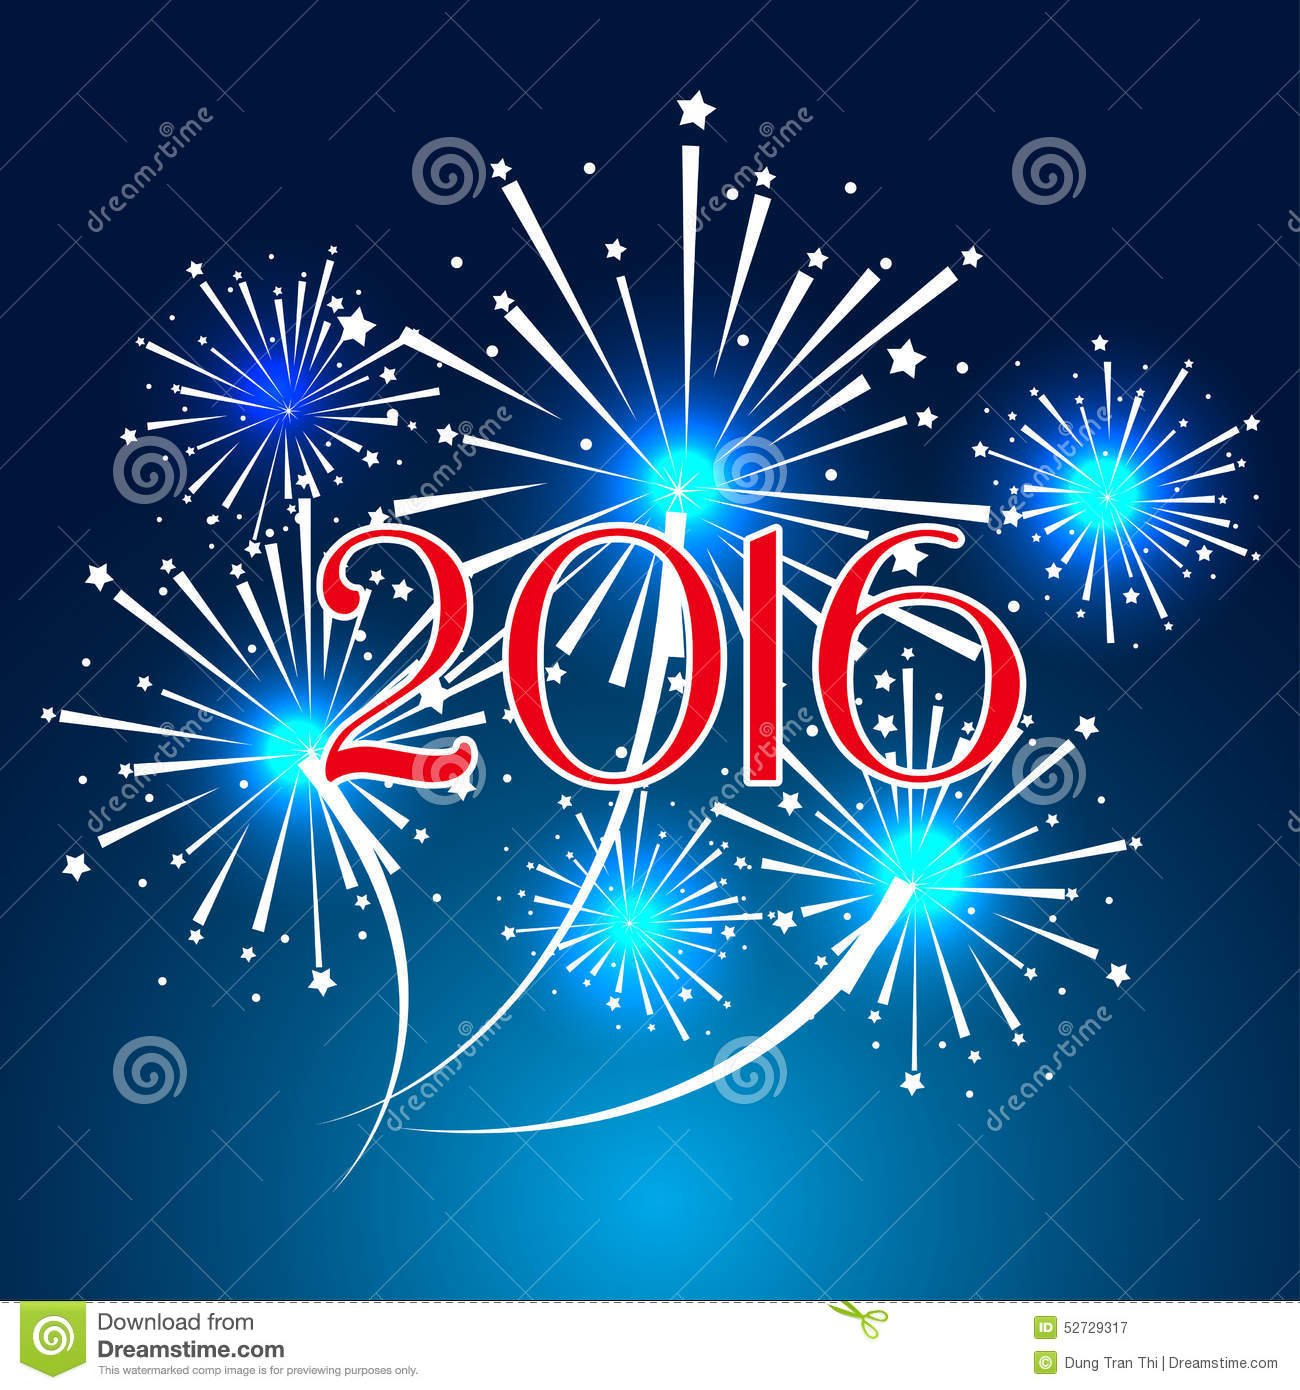 Happy New Year 2016 Images Wallpaper 17360 Wallpaper computer 1300x1390